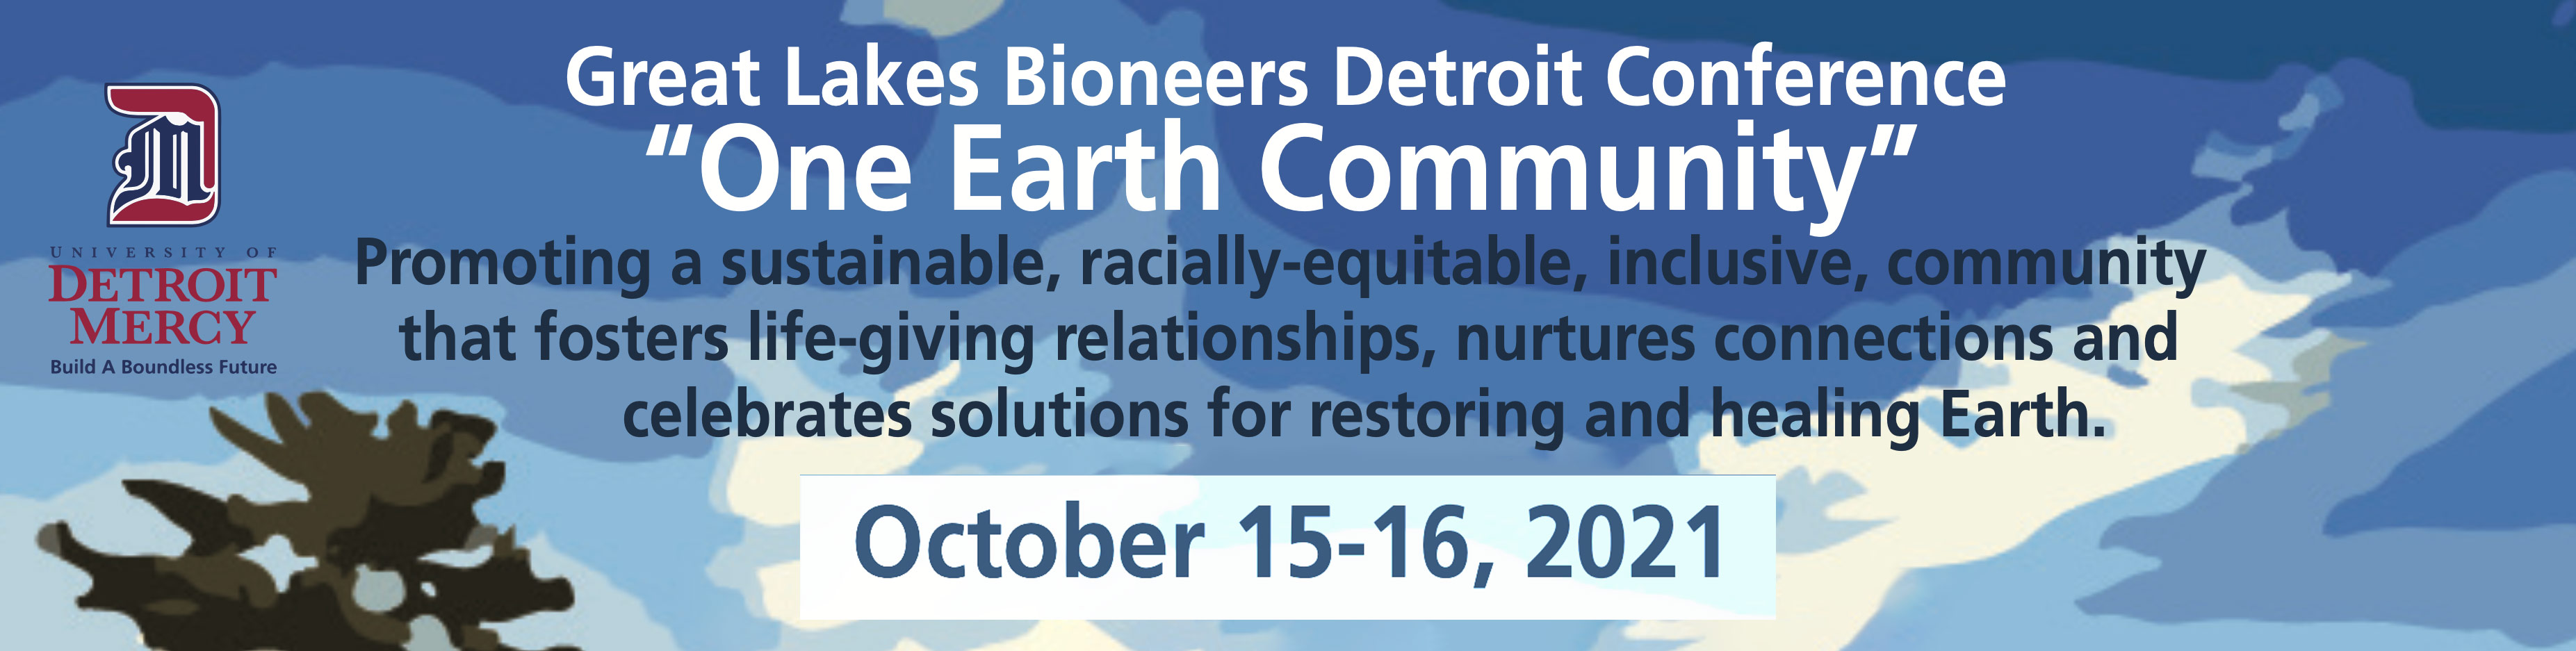 """Great Lakes Bioneers Detroit Conference """"One Earth Community"""" DETROIT Promoting a sustainable, racially-equitable, inclusive, community MERCY Build A Boundless Future that fosters life-giving relationships, nurtures connections and celebrates solutions for restoring and healing Earth. October 15-16, 2021"""